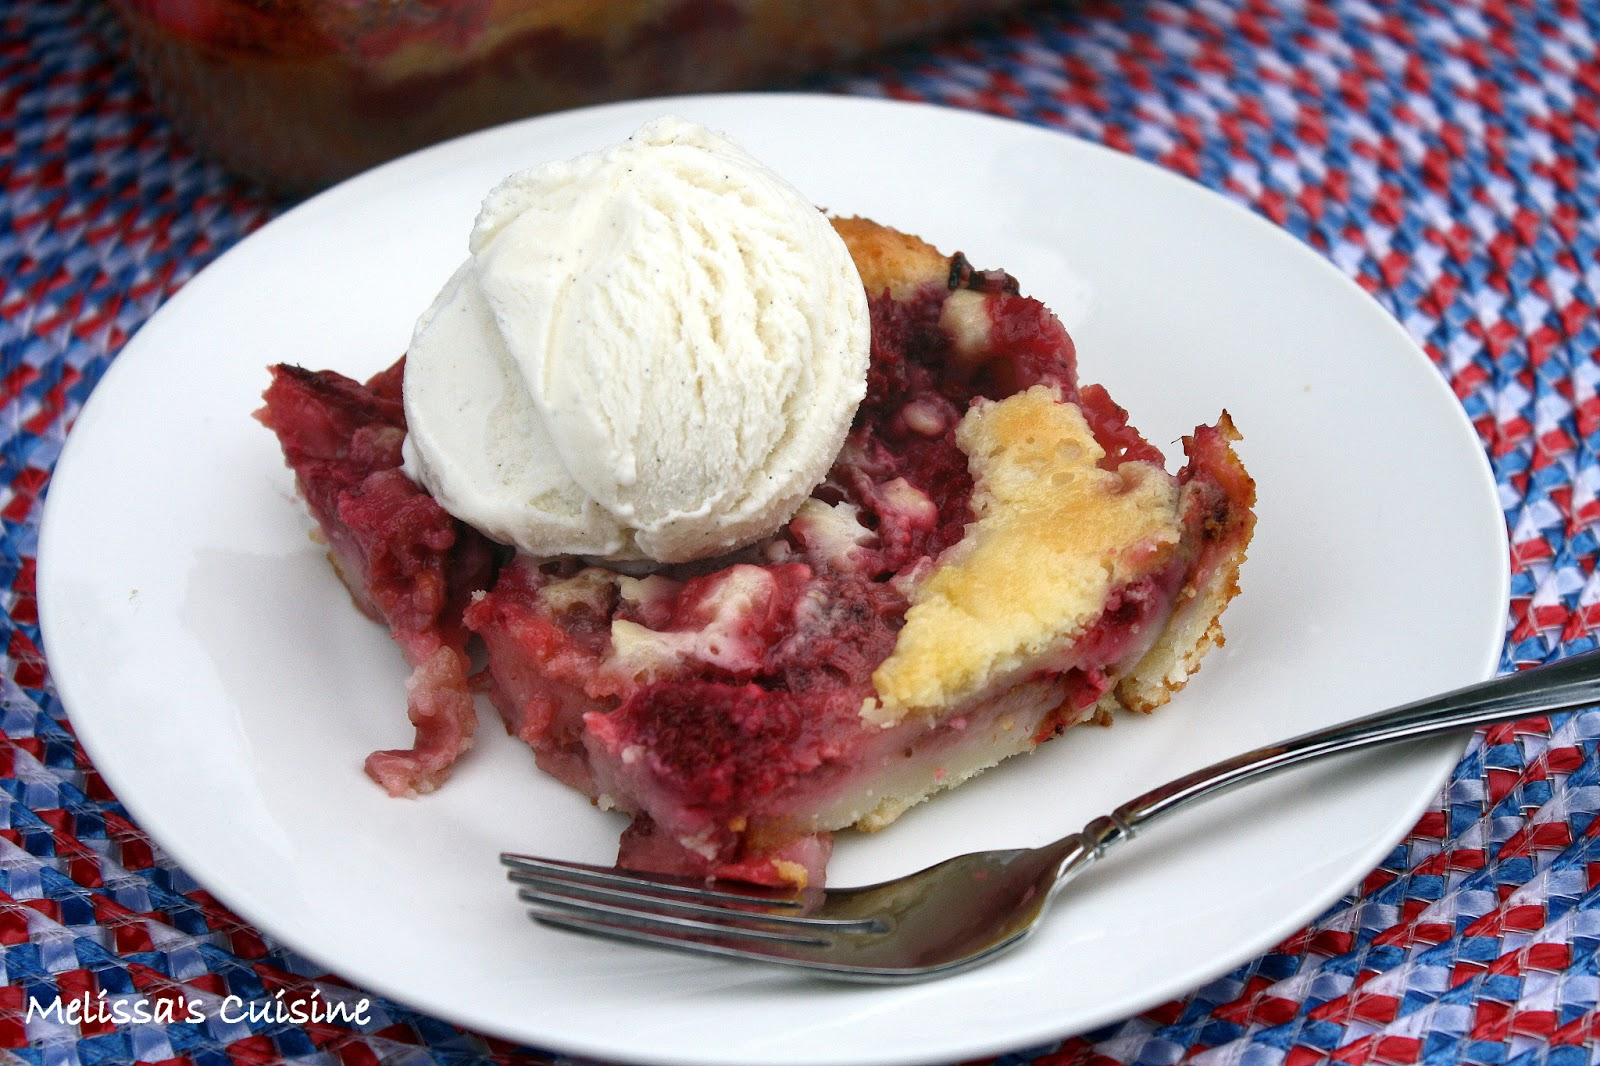 Melissa's Cuisine: Strawberry & Raspberry Cobbler